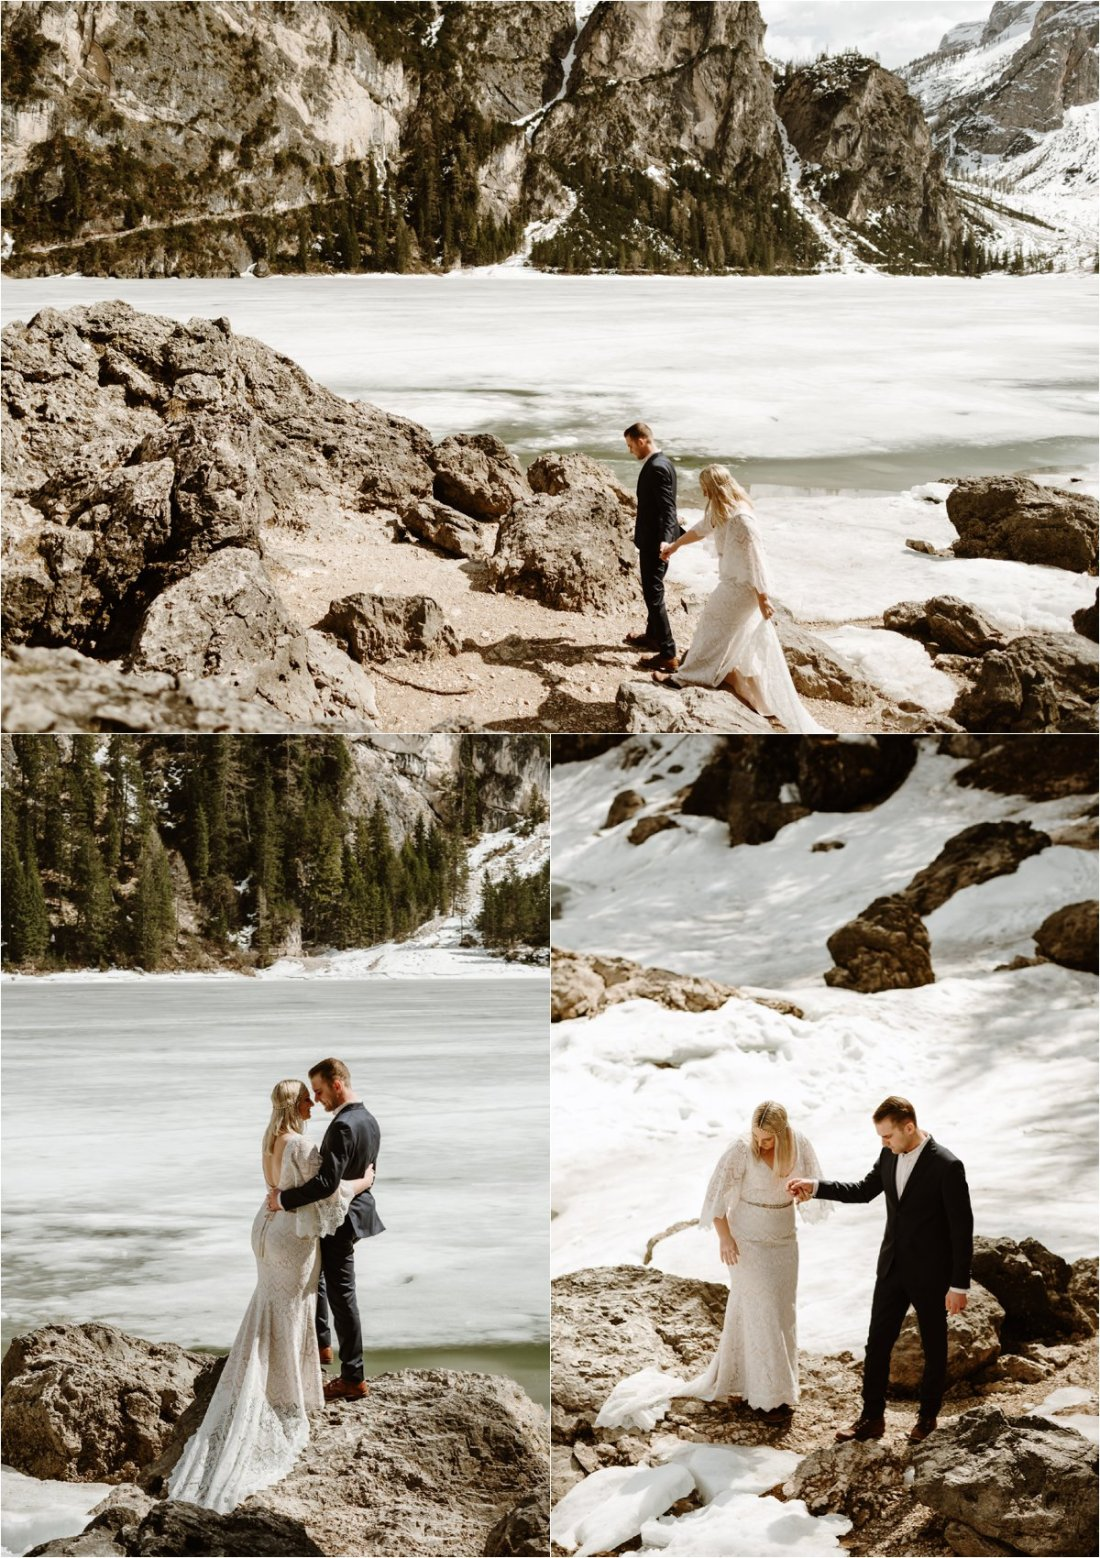 Erika & Nathan explore the shores of Lago di Braies in the Italian Alps for their elopement in the Dolomites. Photos by Wild Connections Photography